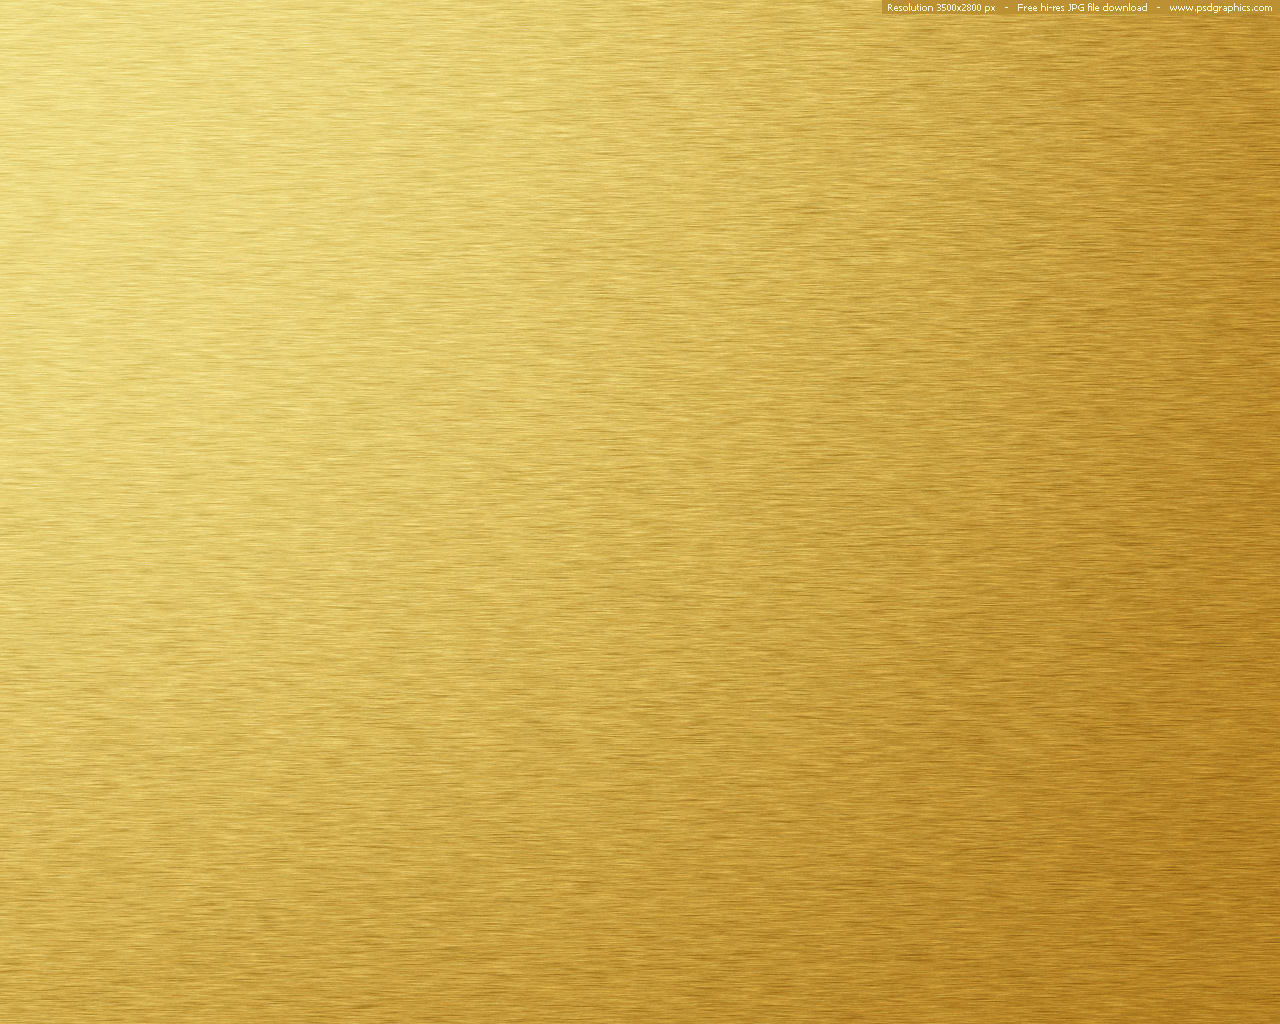 gold metal texture background - photo #2